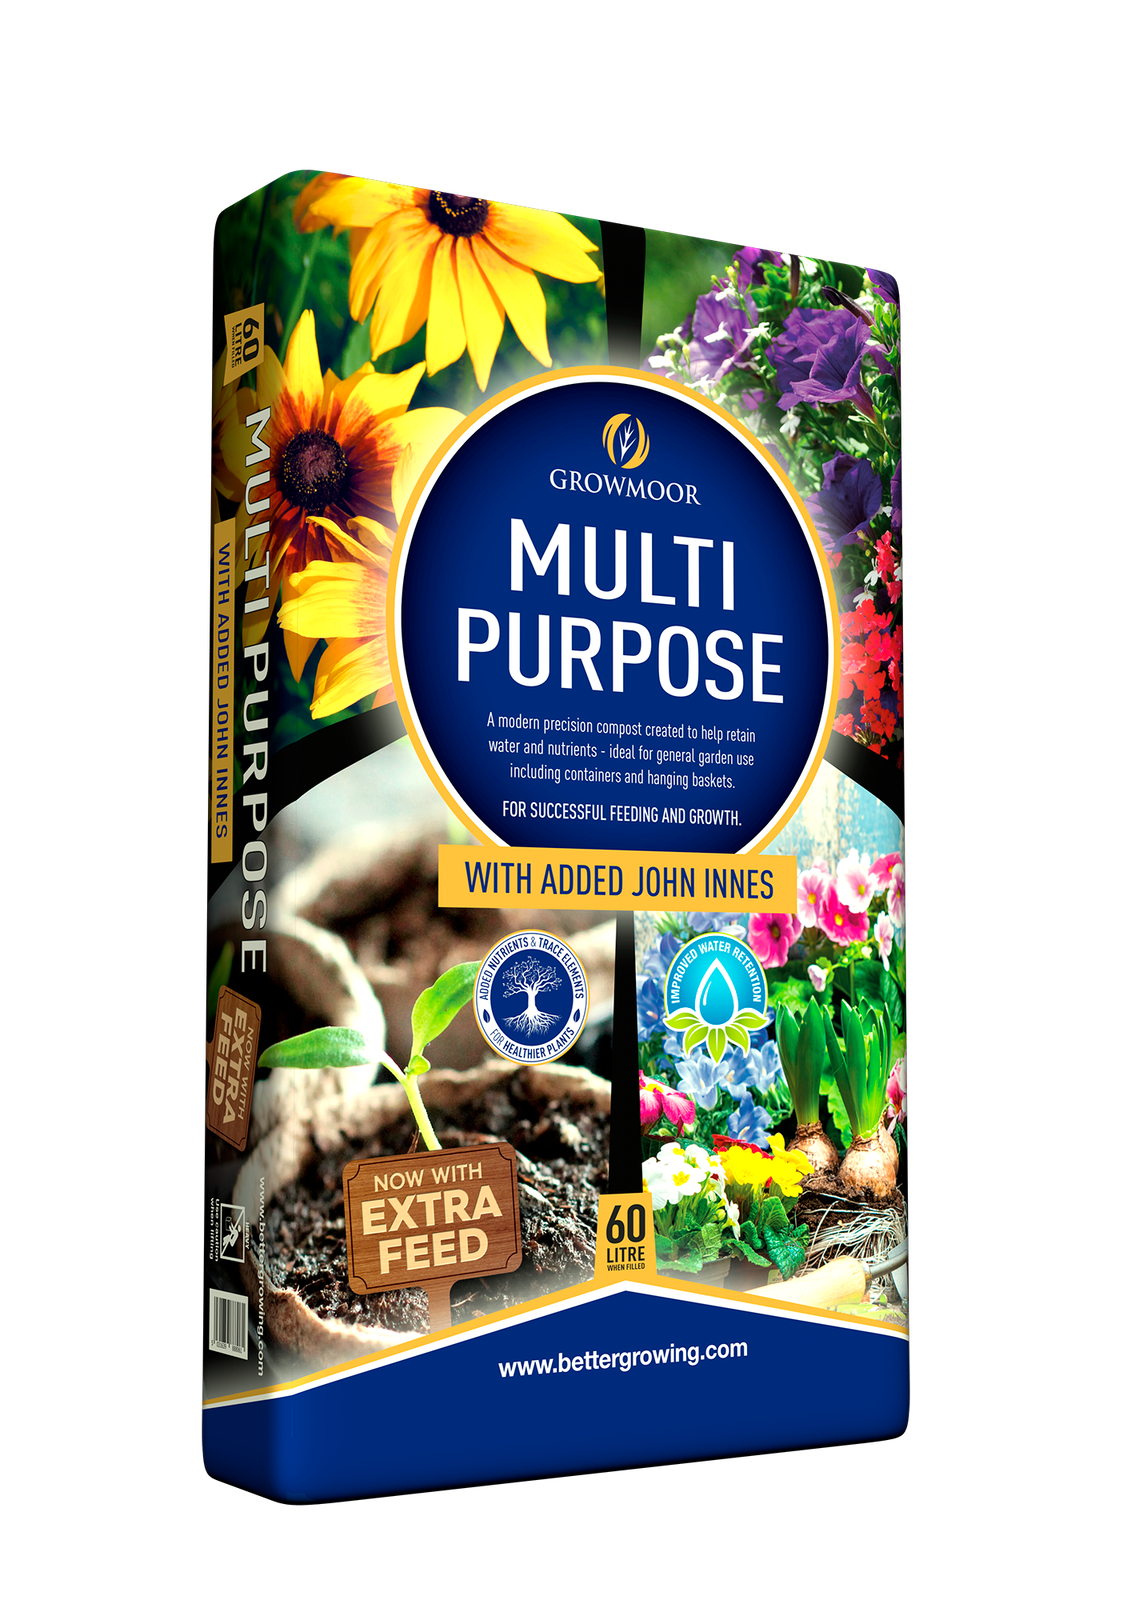 1 x 60L Multi Purpose Compost with added John Innes.